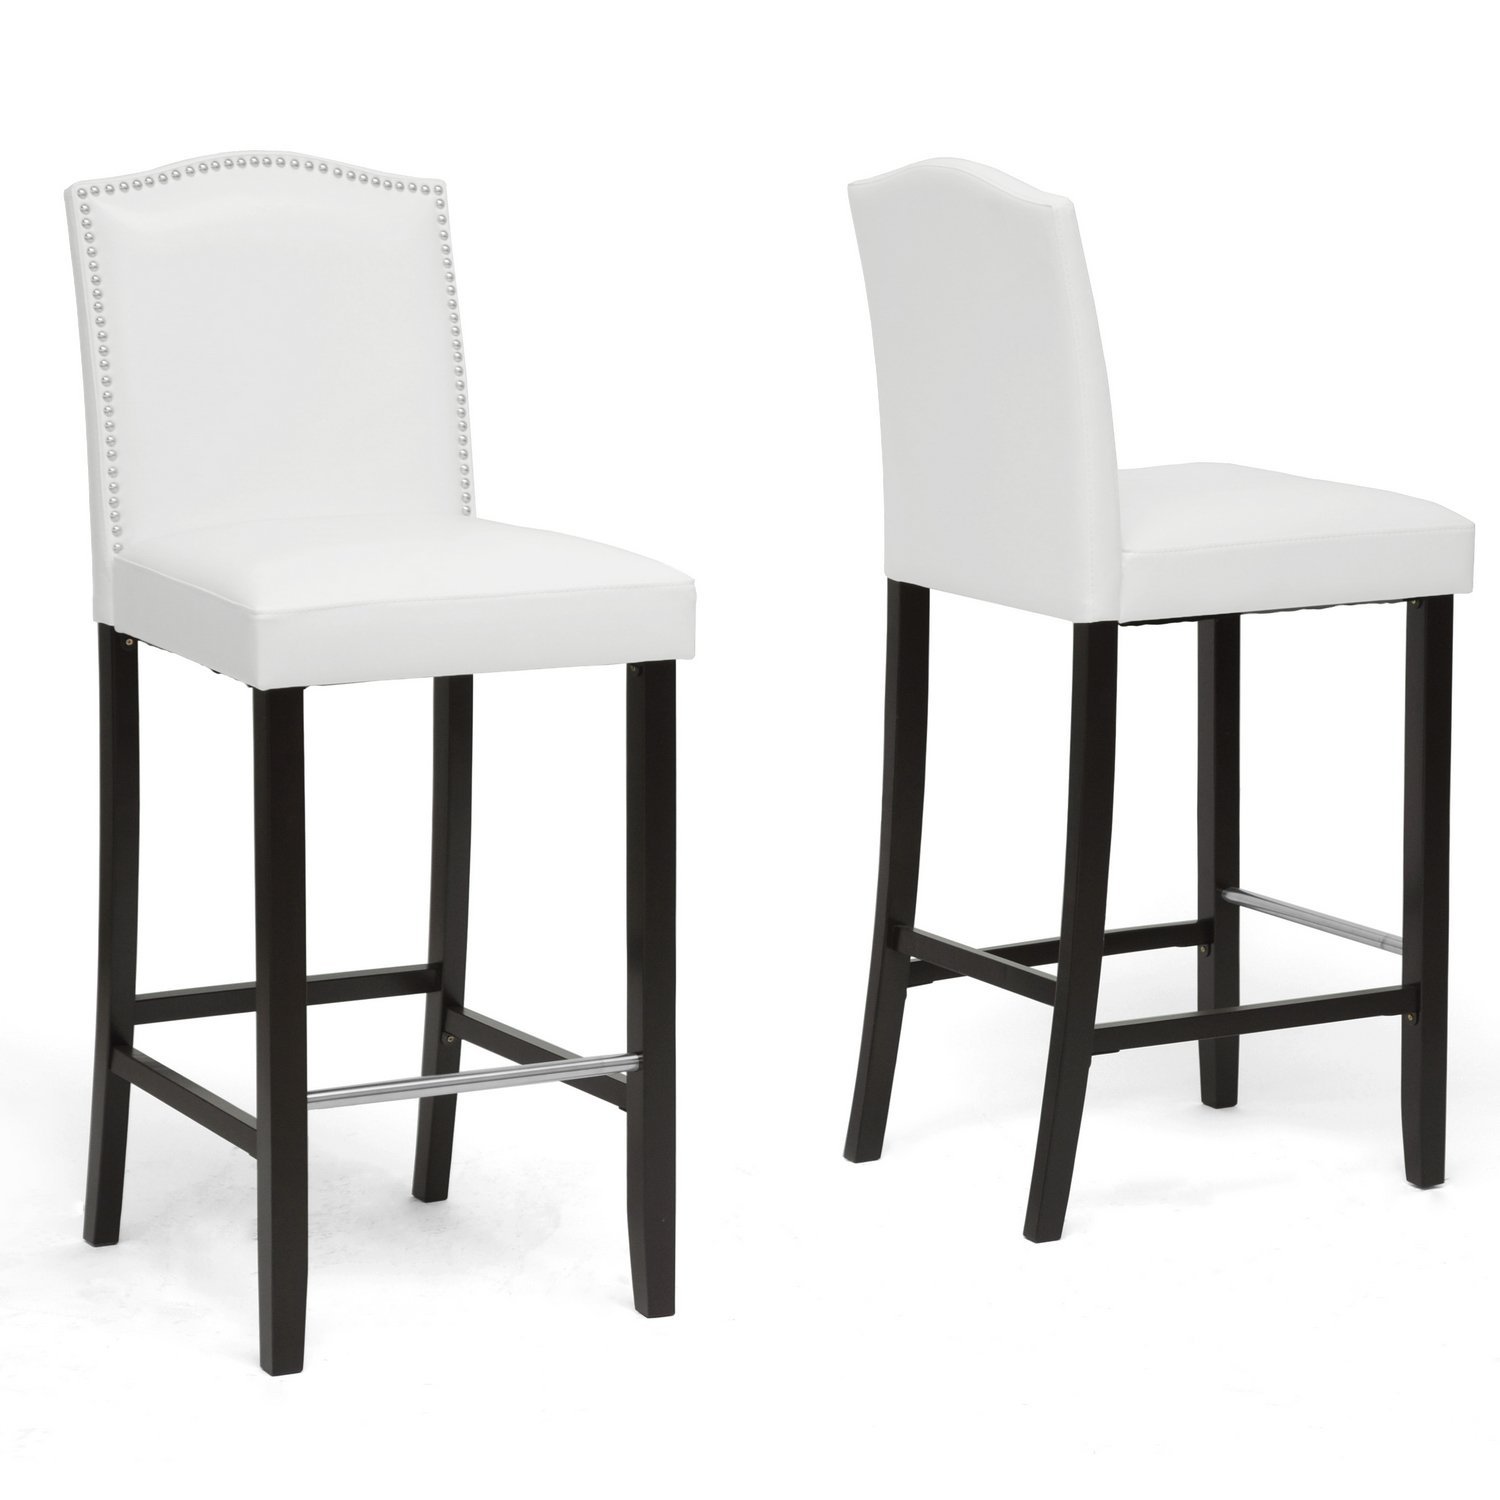 Amazon Baxton Studio Libra Modern Bar Stool with Nail Head